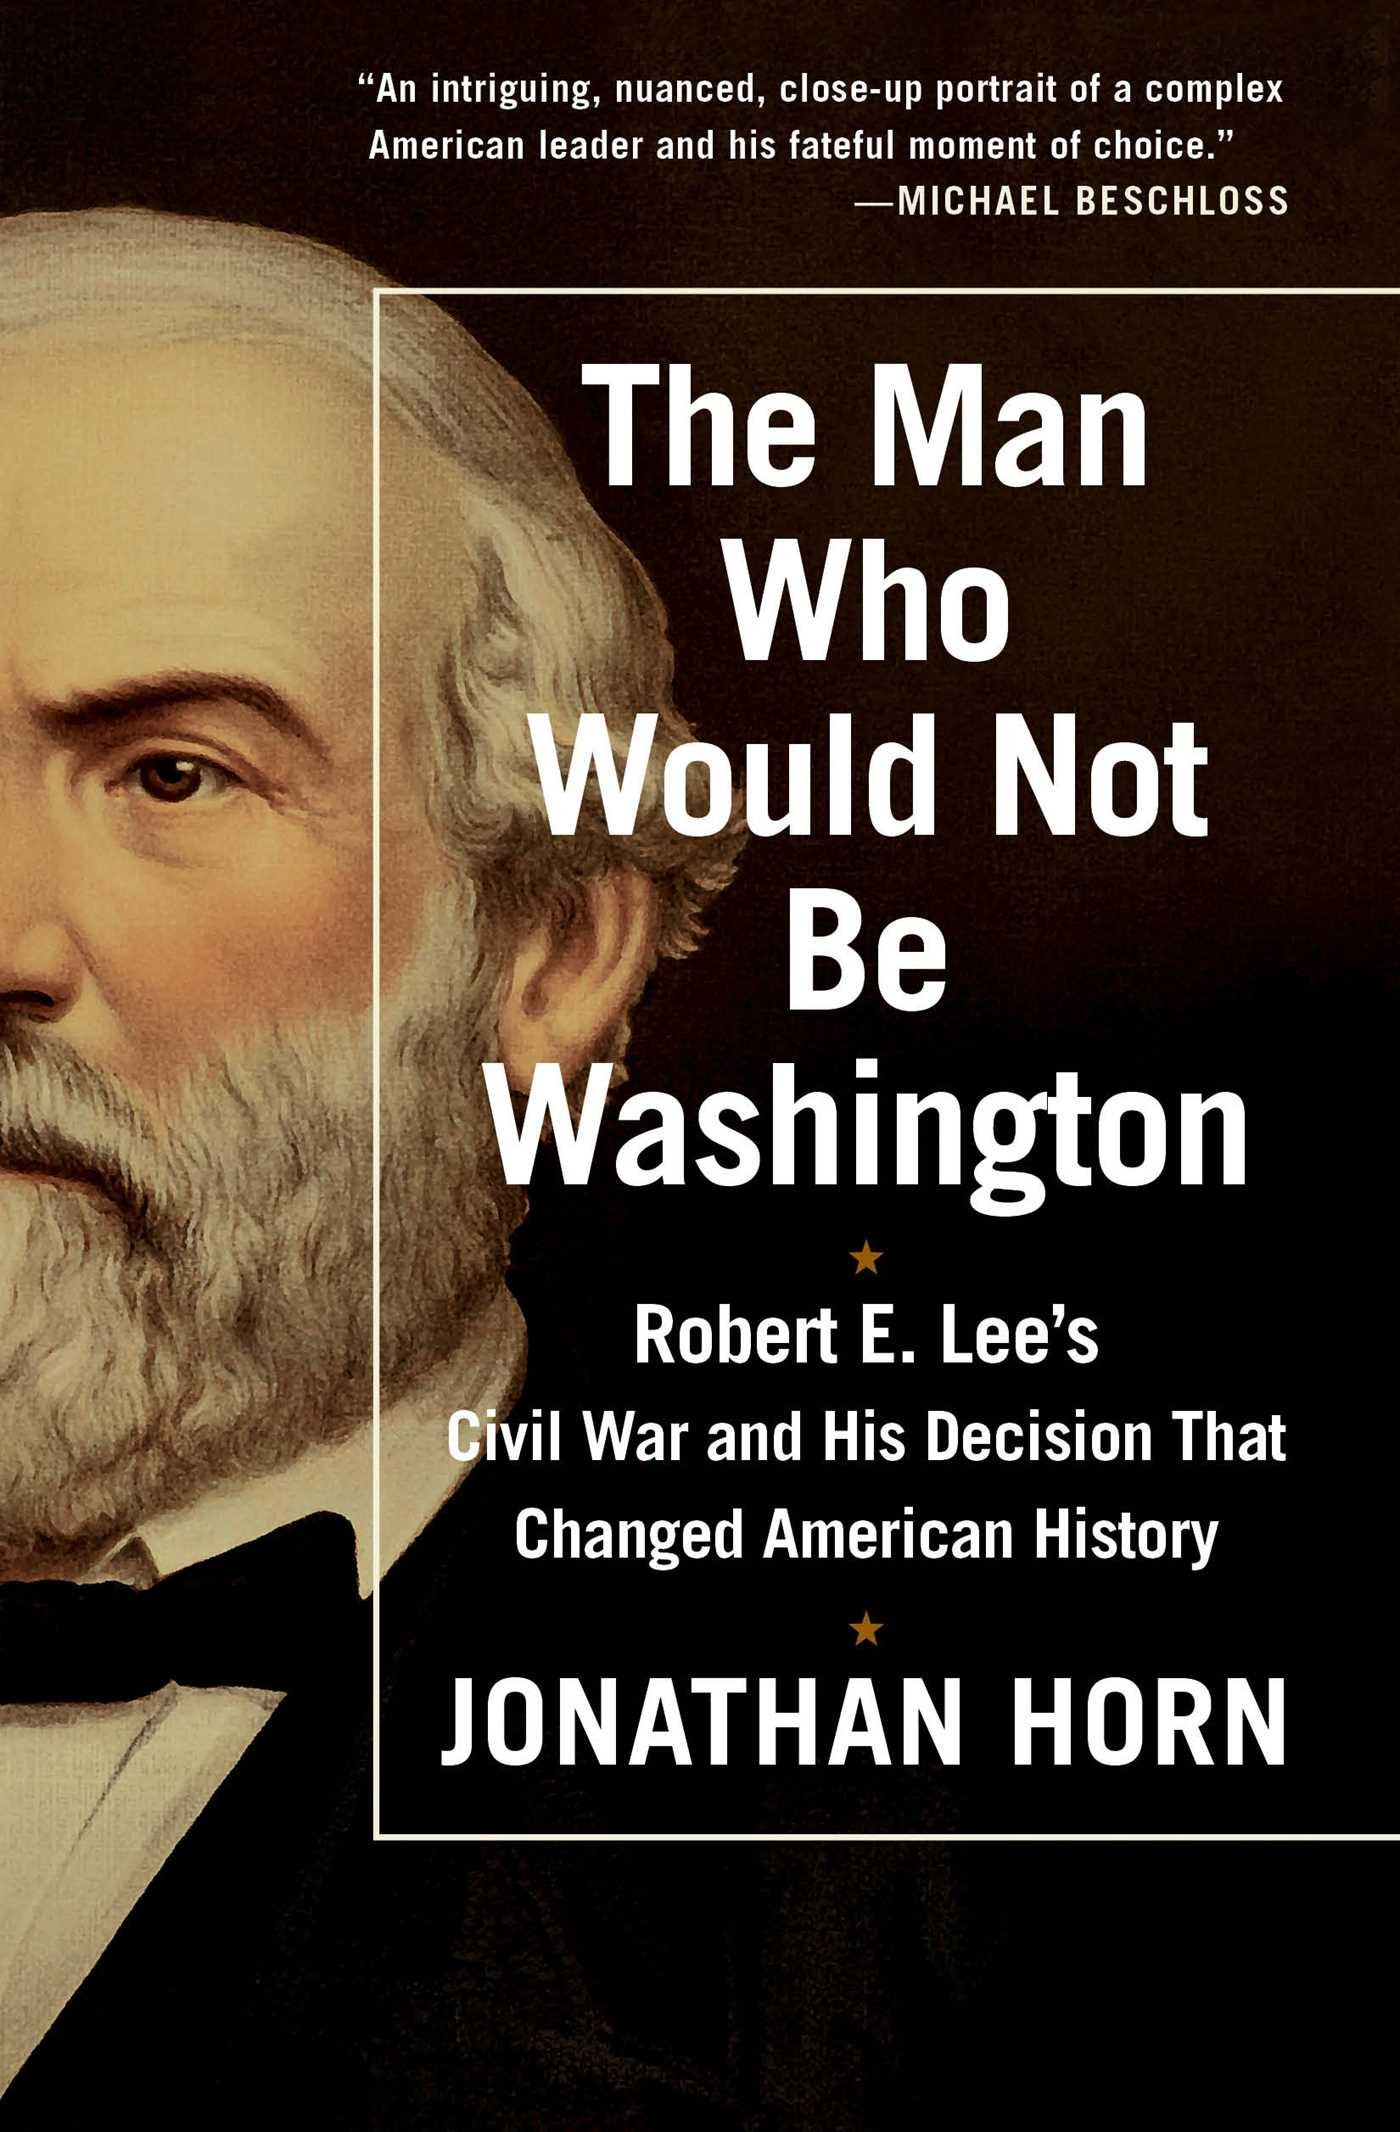 Read Online The Man Who Would Not Be Washington: Robert E. Lee's Civil War and His Decision That Changed American History PDF